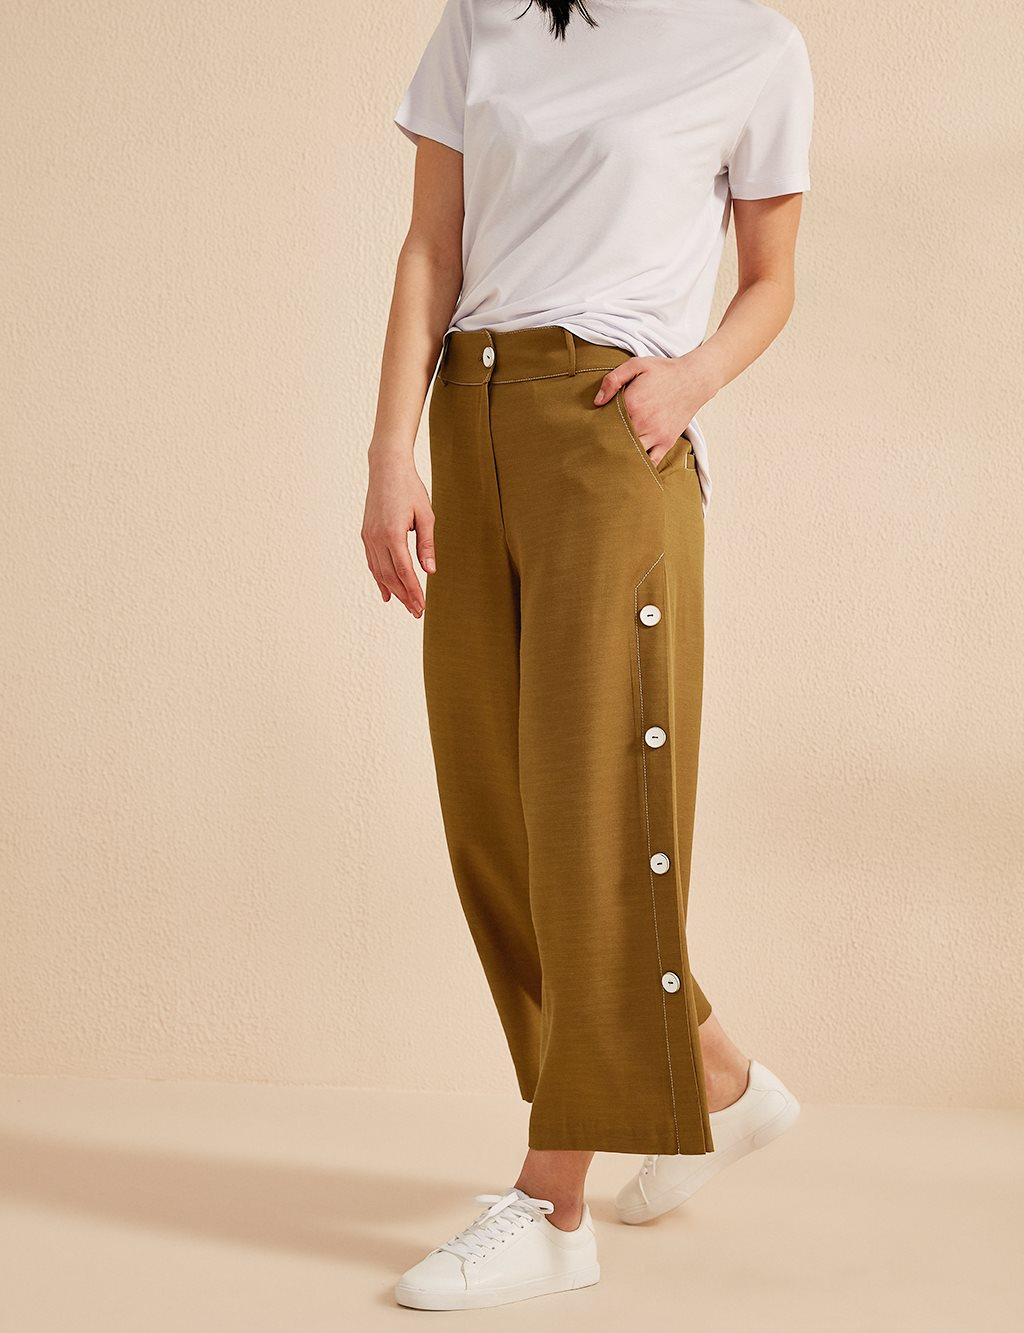 KYR Button Detailed Wide Leg Pants B20 79015 Olive